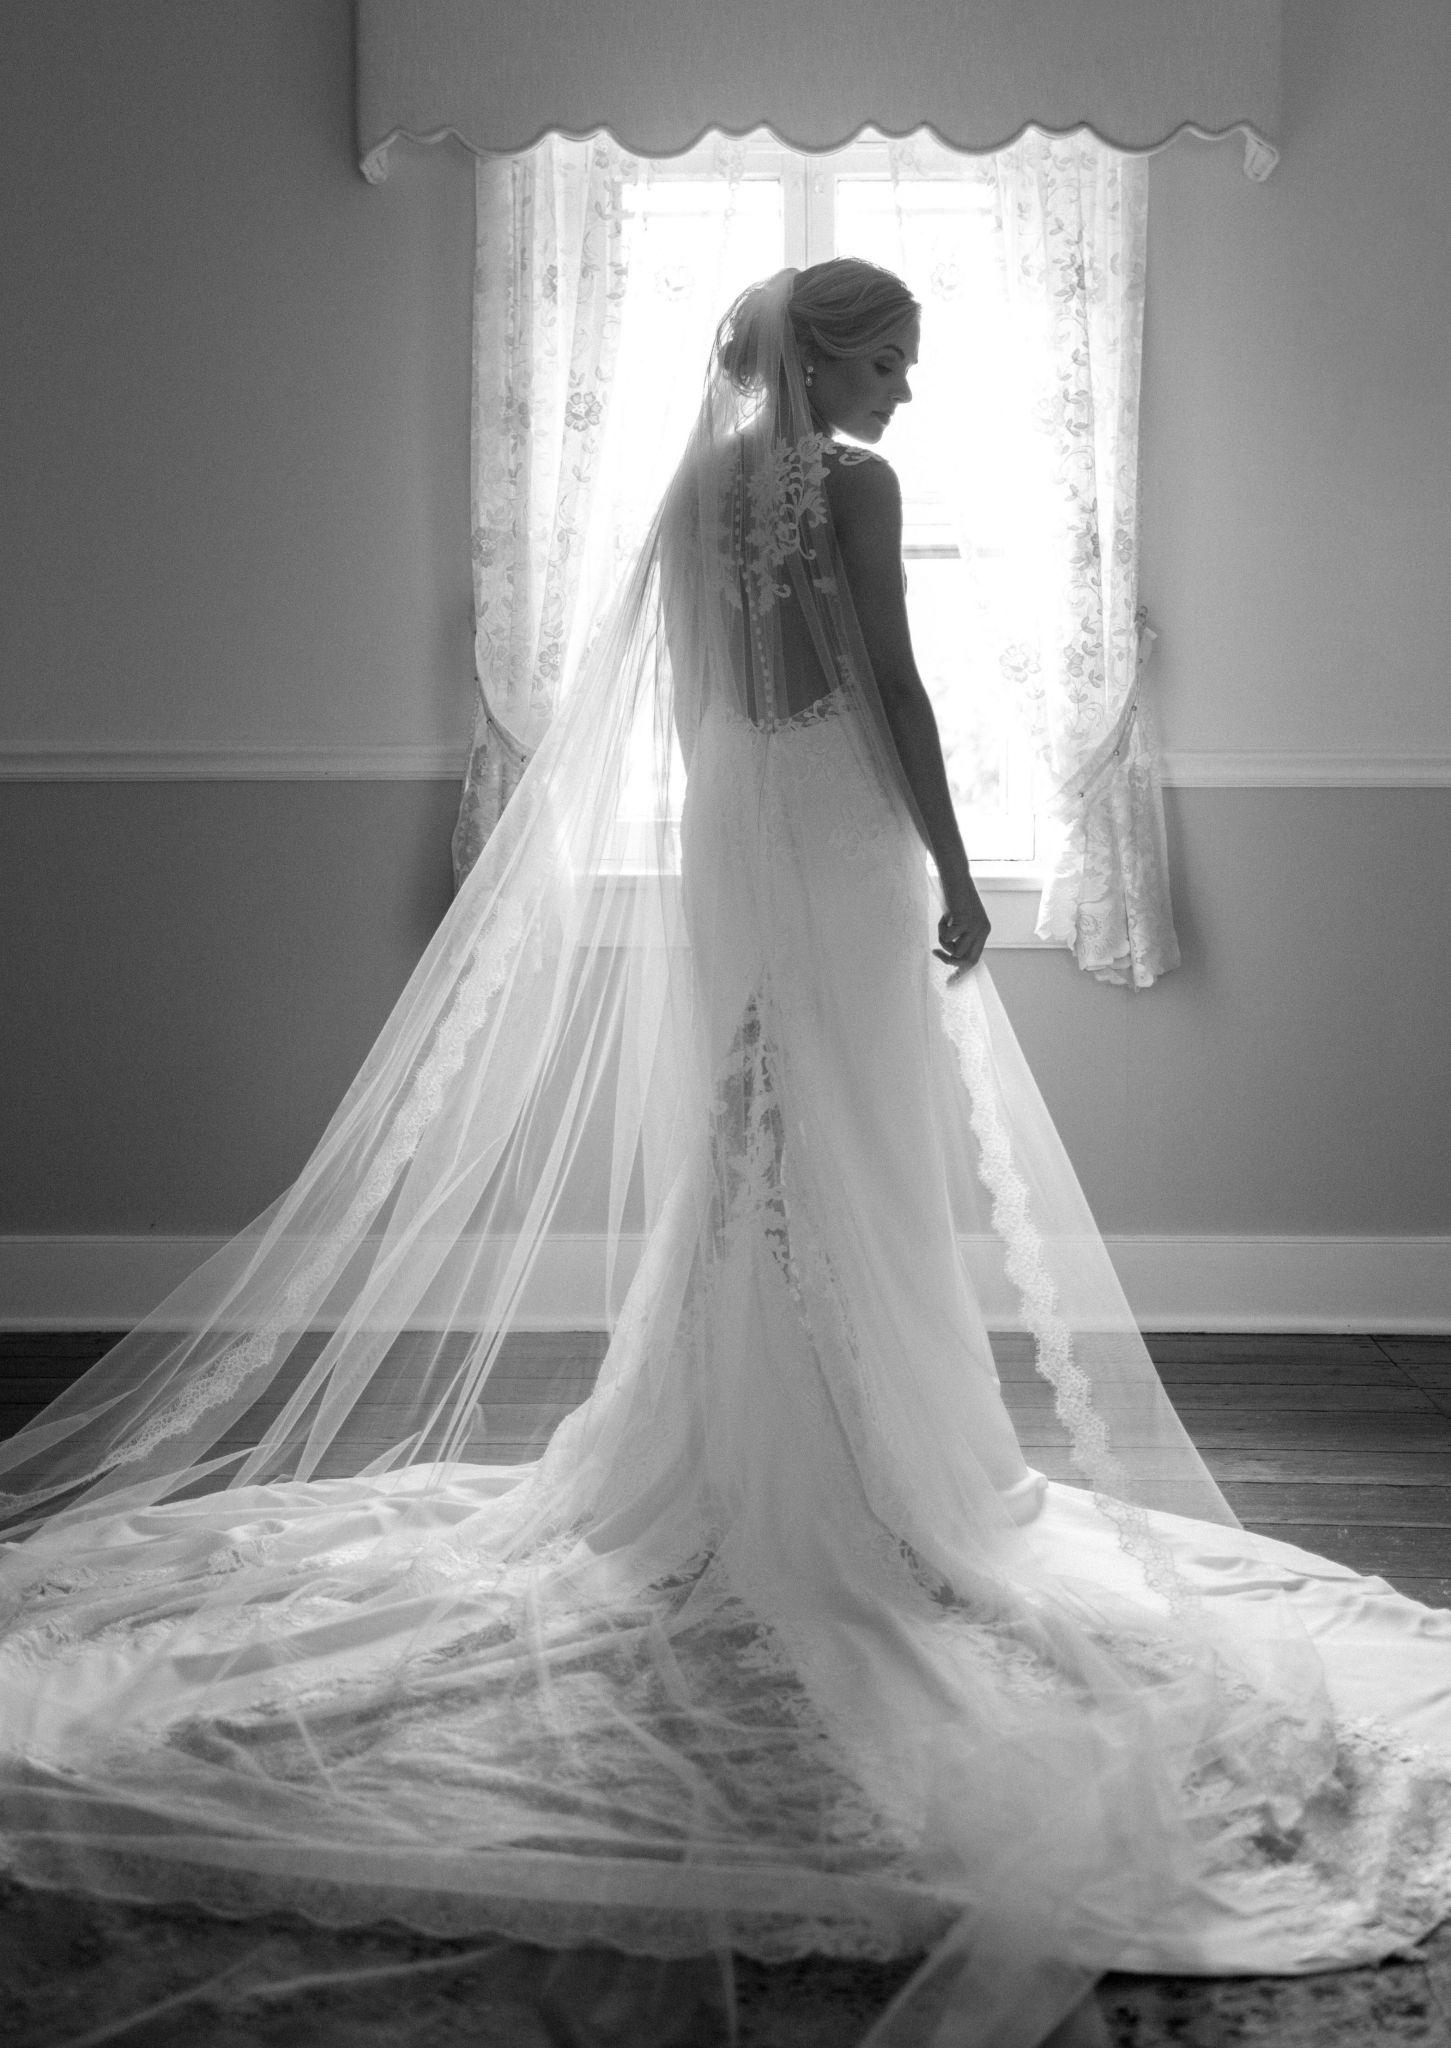 Wedding dresses stores  cheap wedding dress stores near me  dresses for wedding party Check